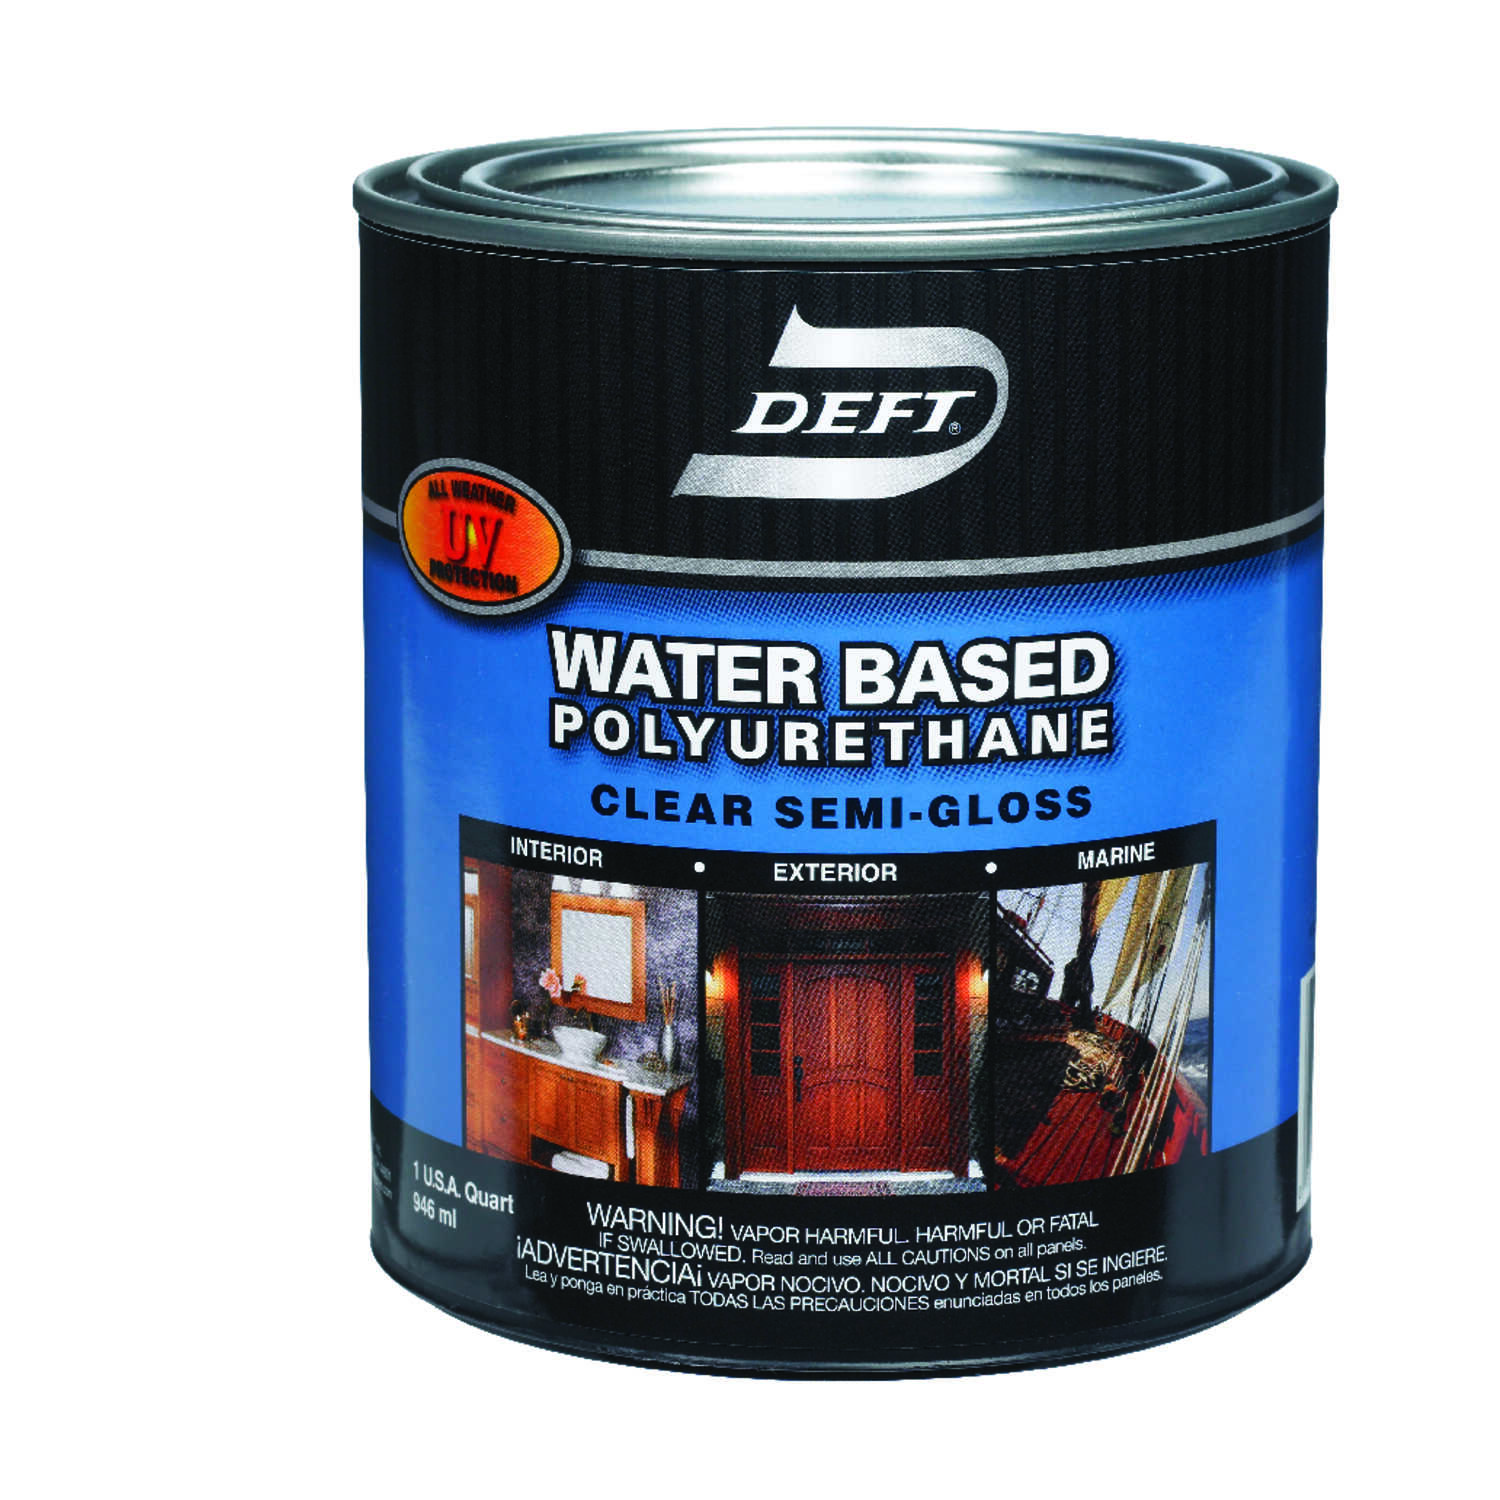 Deft  Water Based Polyurethane  Semi-Gloss  1 qt. Waterborne Wood Finish  Clear